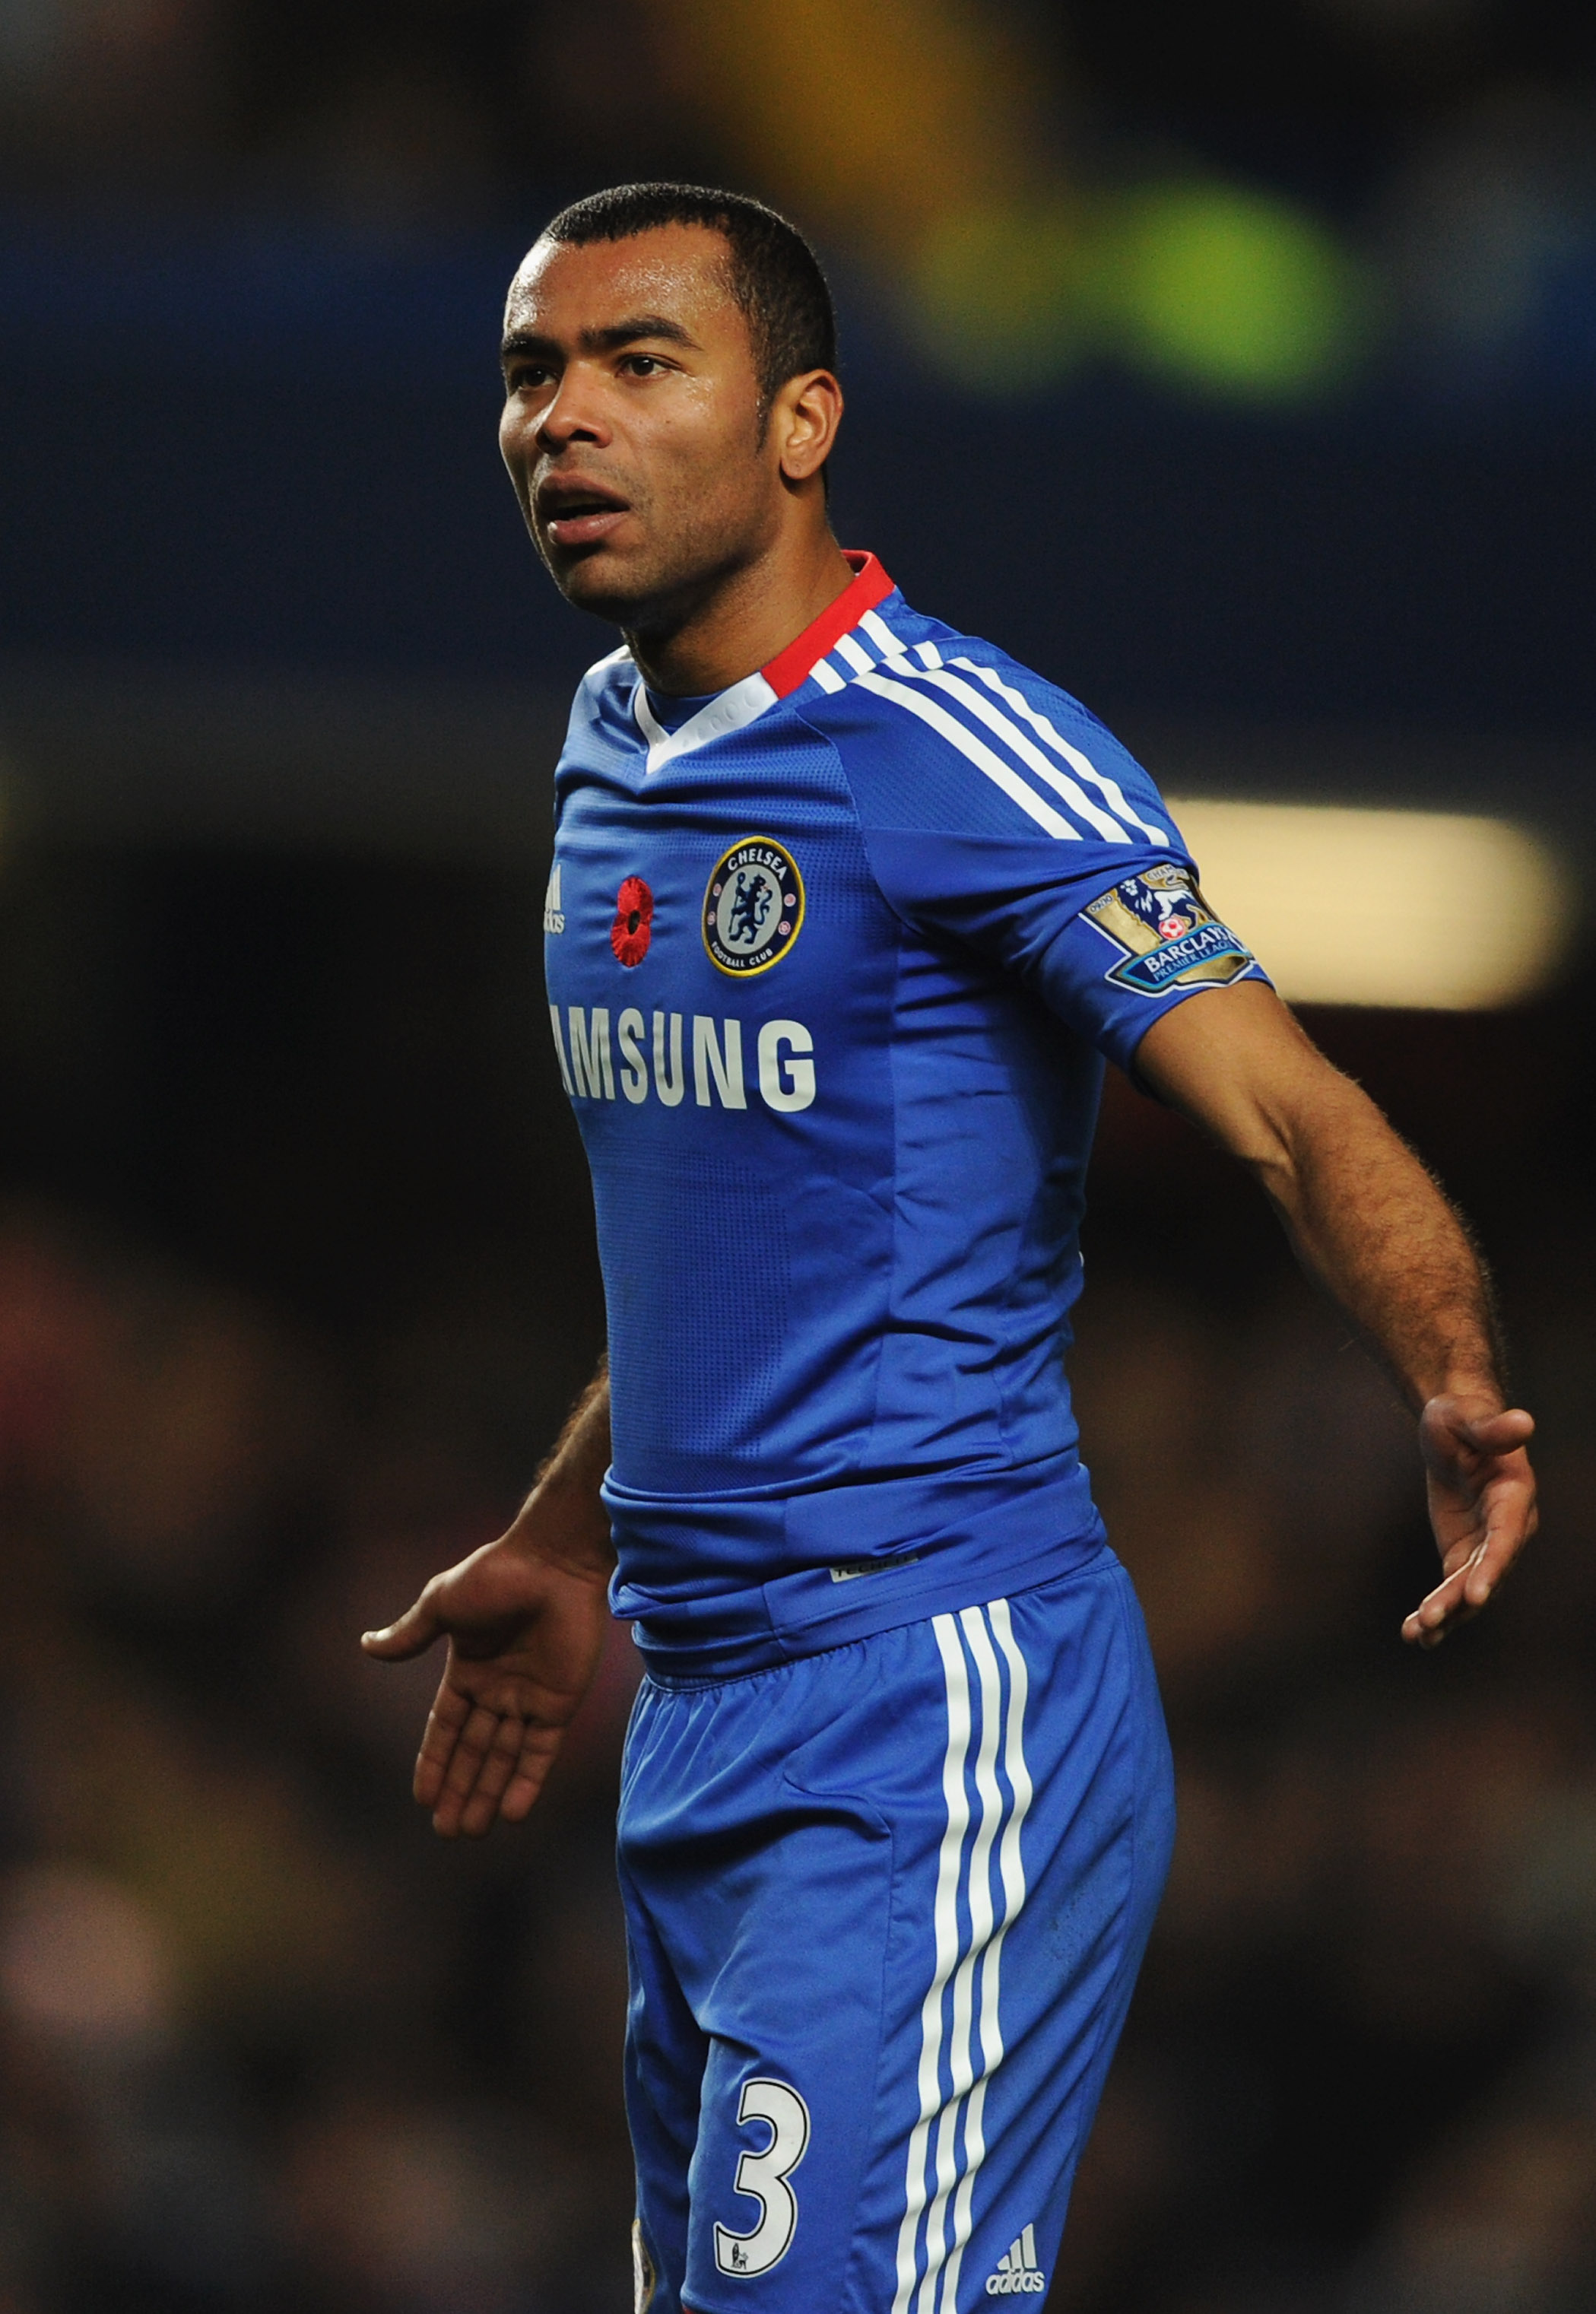 LONDON, ENGLAND - NOVEMBER 14:  Ashley Cole of Chelsea appeals during the Barclays Premier League match between Chelsea and Sunderland at Stamford Bridge on November 14, 2010 in London, England.  (Photo by Michael Regan/Getty Images)